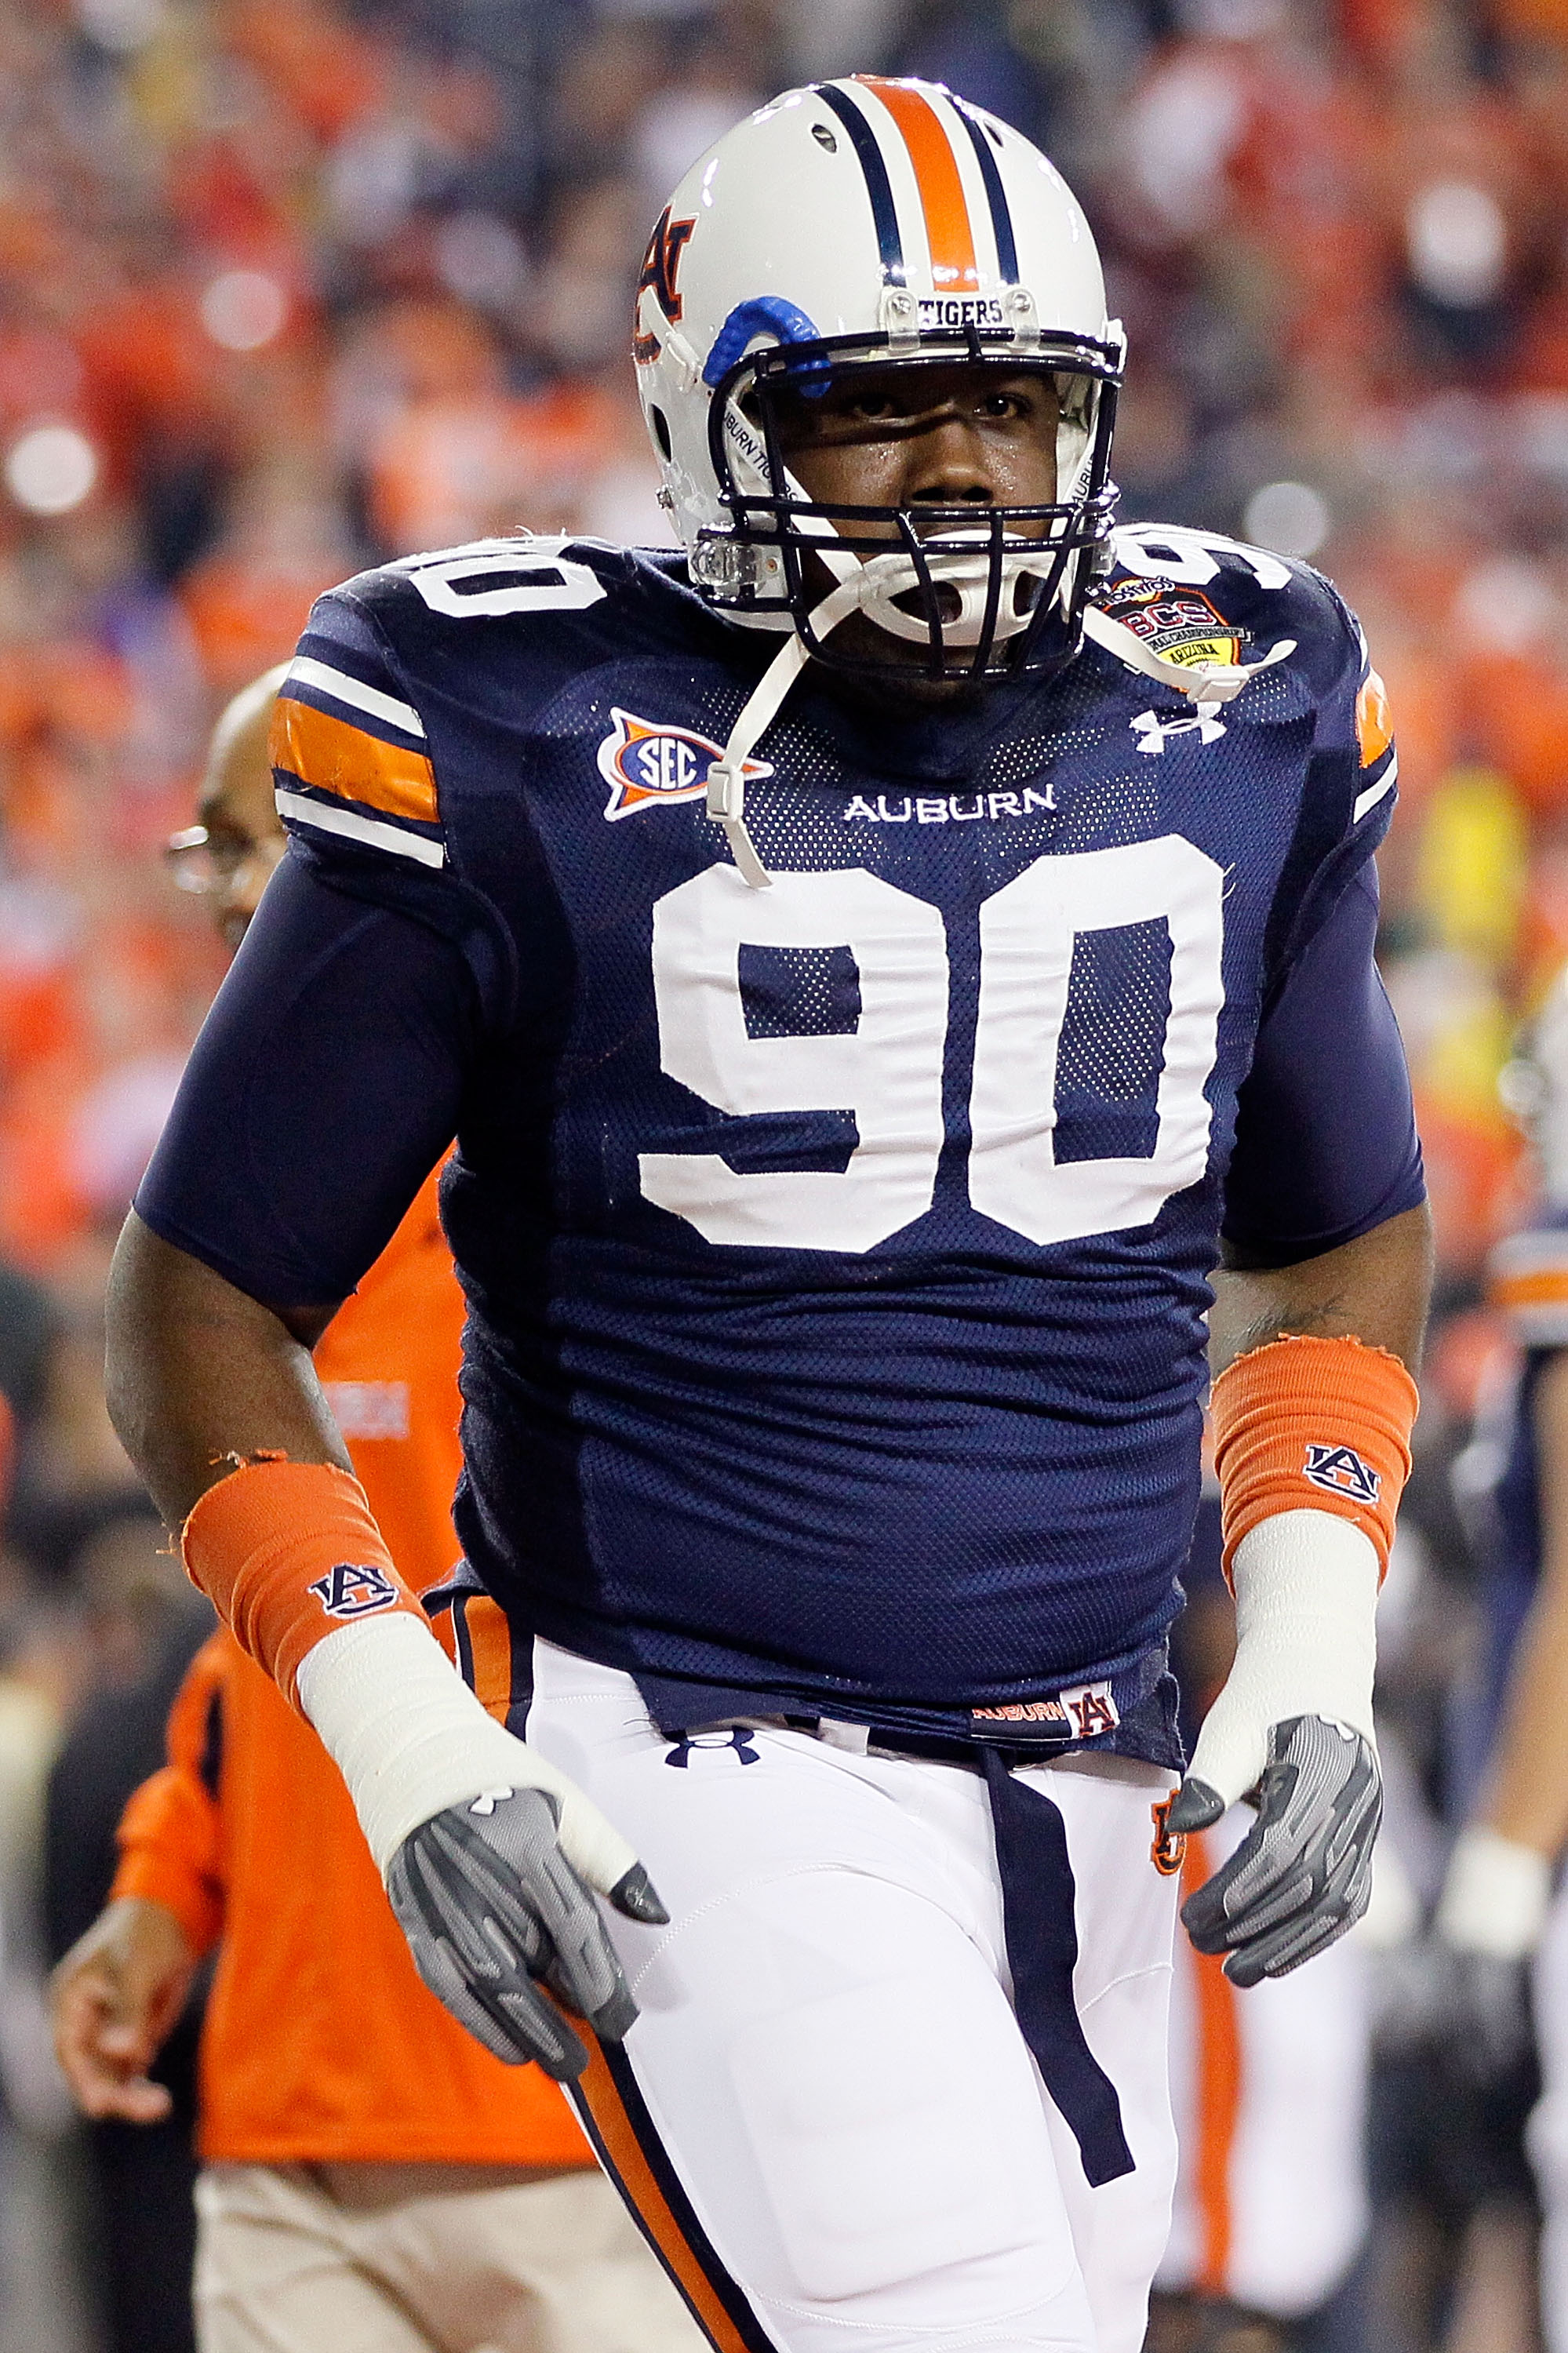 GLENDALE, AZ - JANUARY 10:  Nick Fairley #90 of the Auburn Tigers warms up before taking on the Oregon Ducks during the Tostitos BCS National Championship Game at University of Phoenix Stadium on January 10, 2011 in Glendale, Arizona.  (Photo by Kevin C.